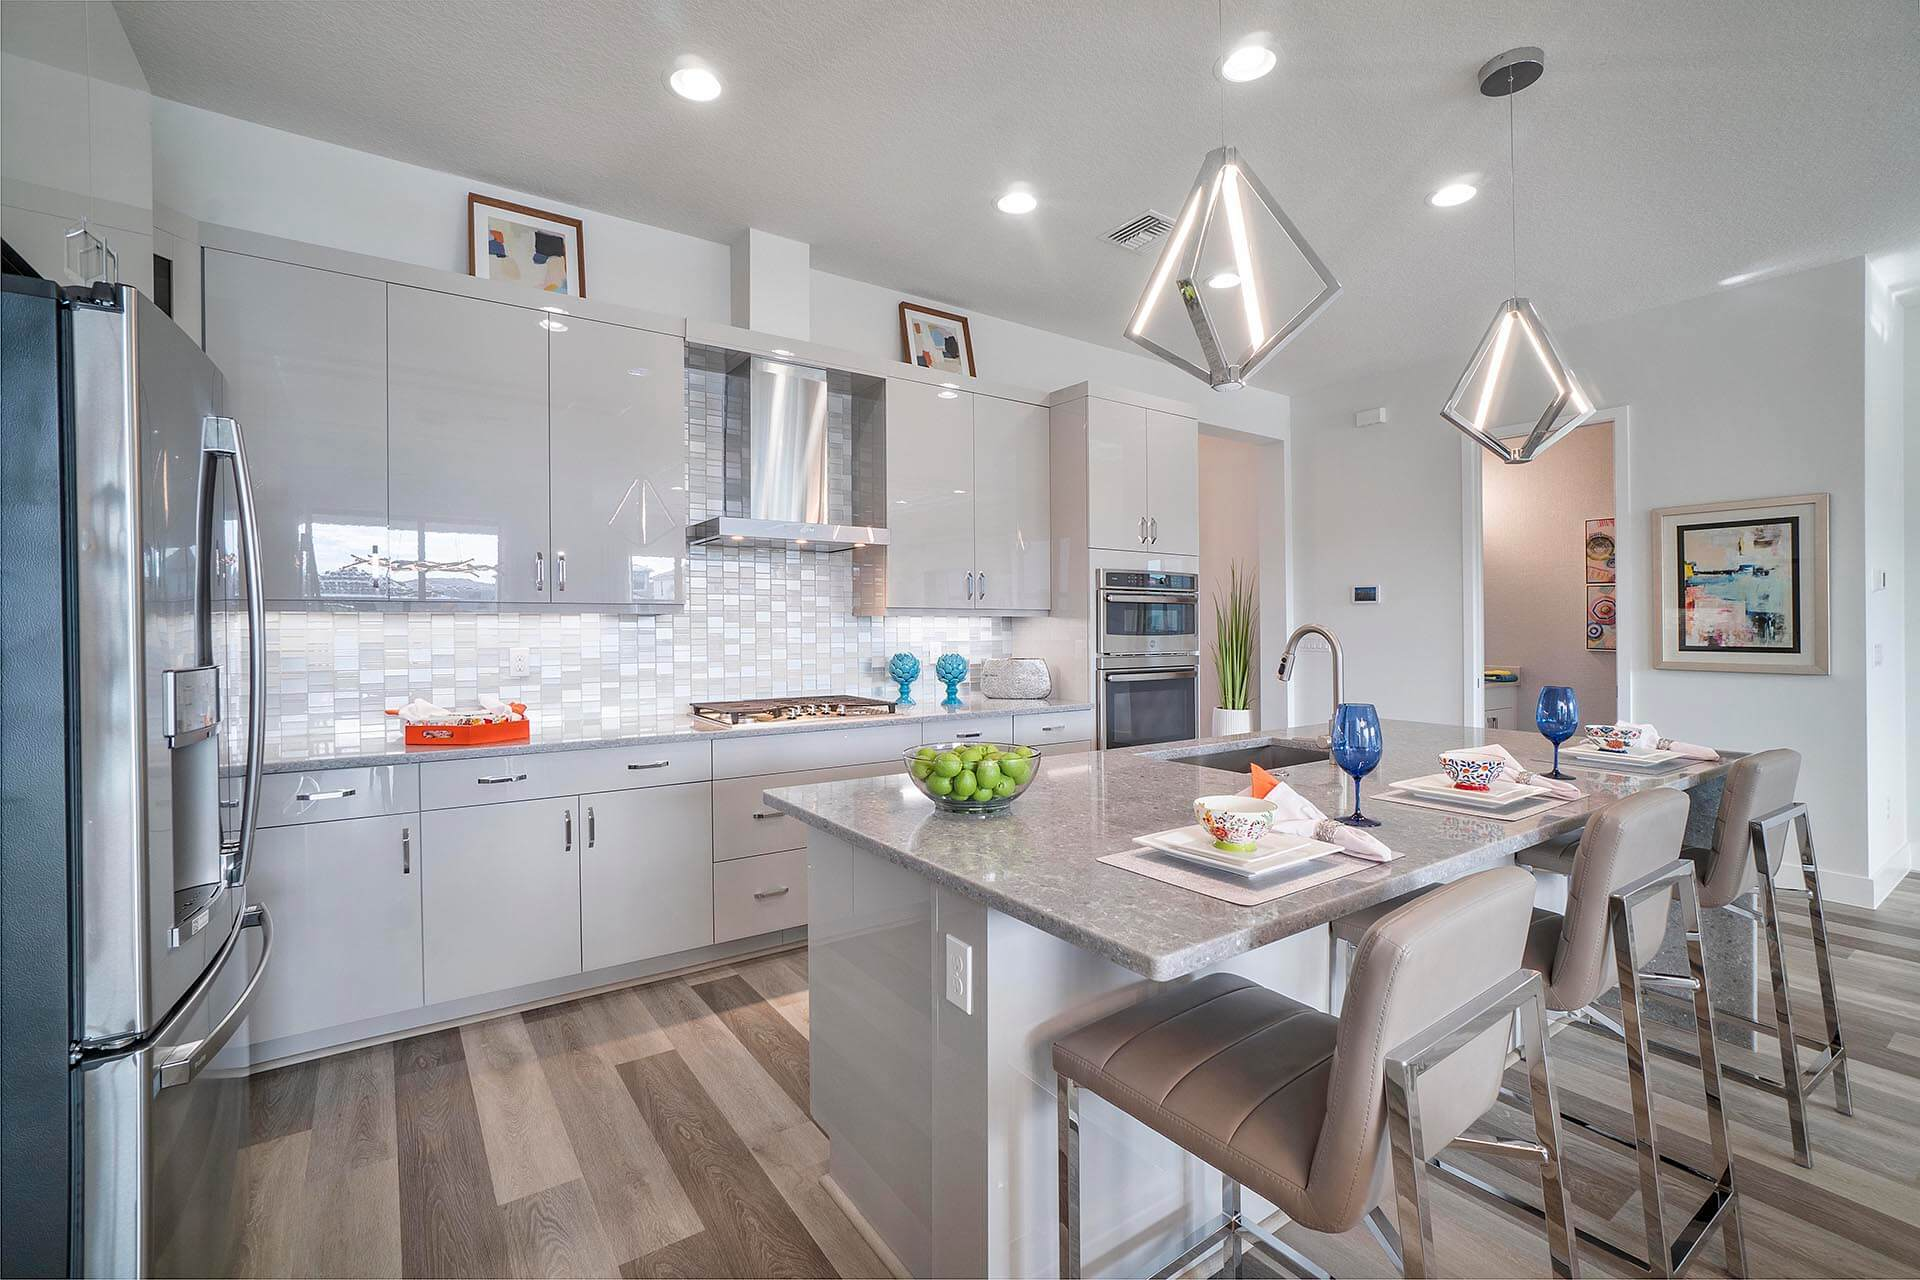 Kitchen featured in the Rio Grand By Akel Homes in Palm Beach County, FL